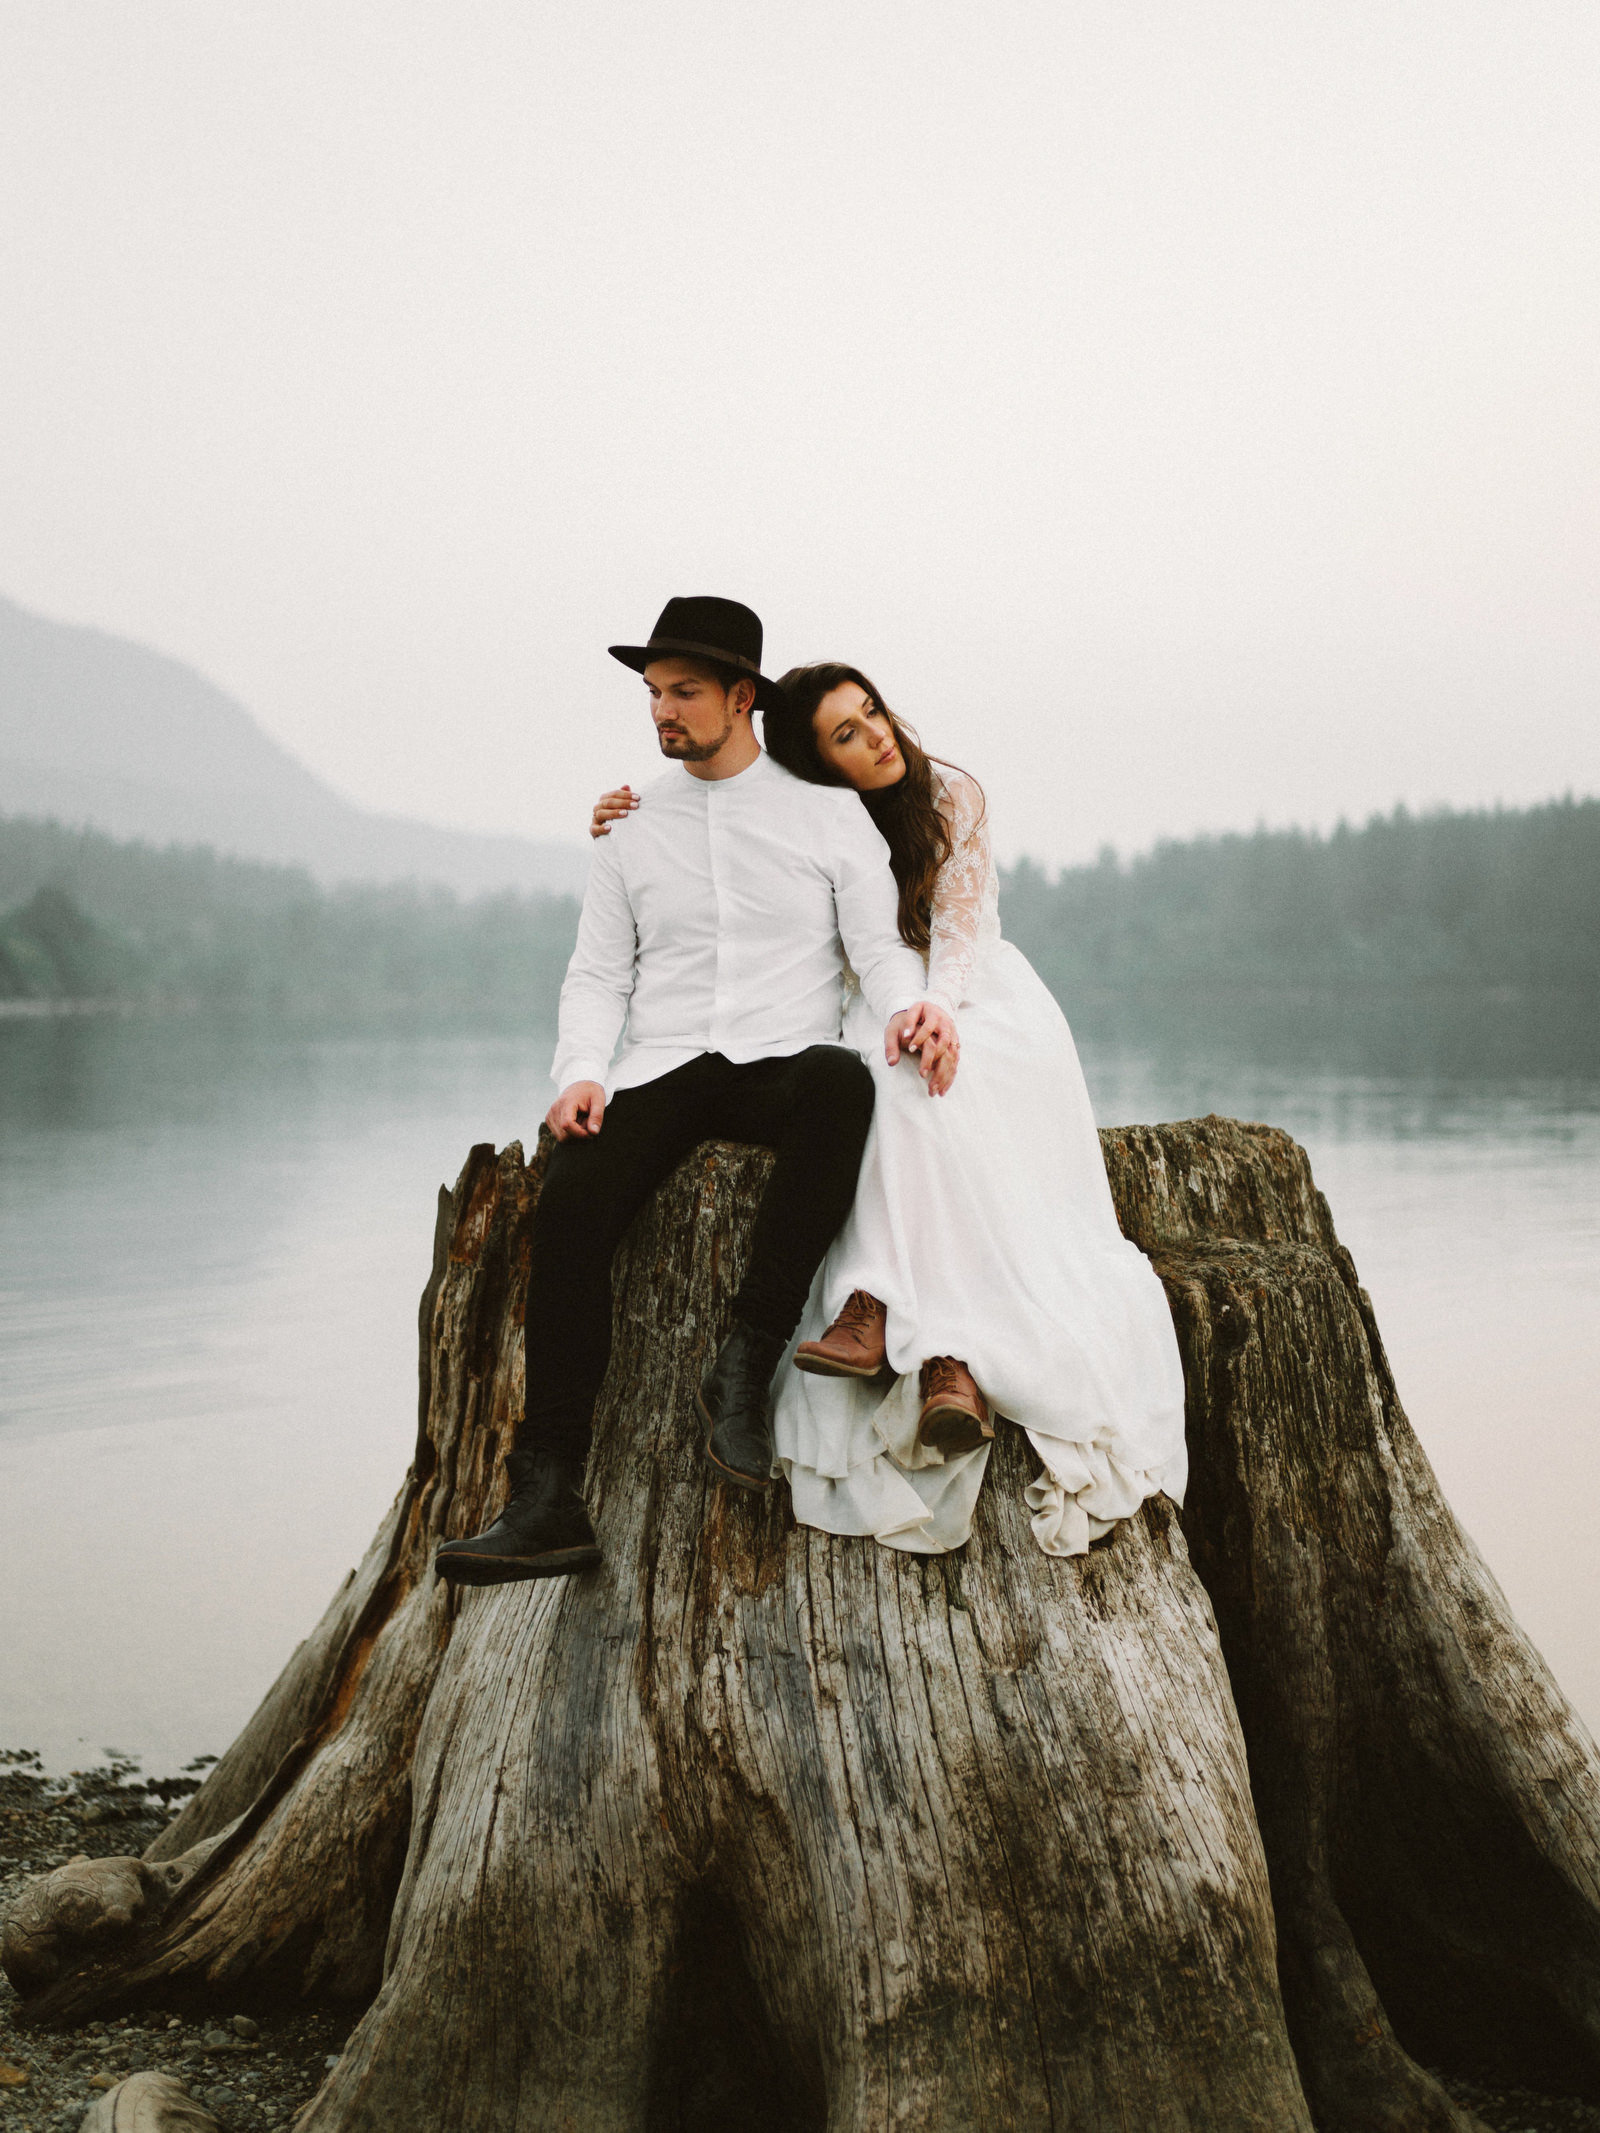 athena-and-camron-seattle-elopement-wedding-benj-haisch-rattlesnake-lake-christian-couple-goals87